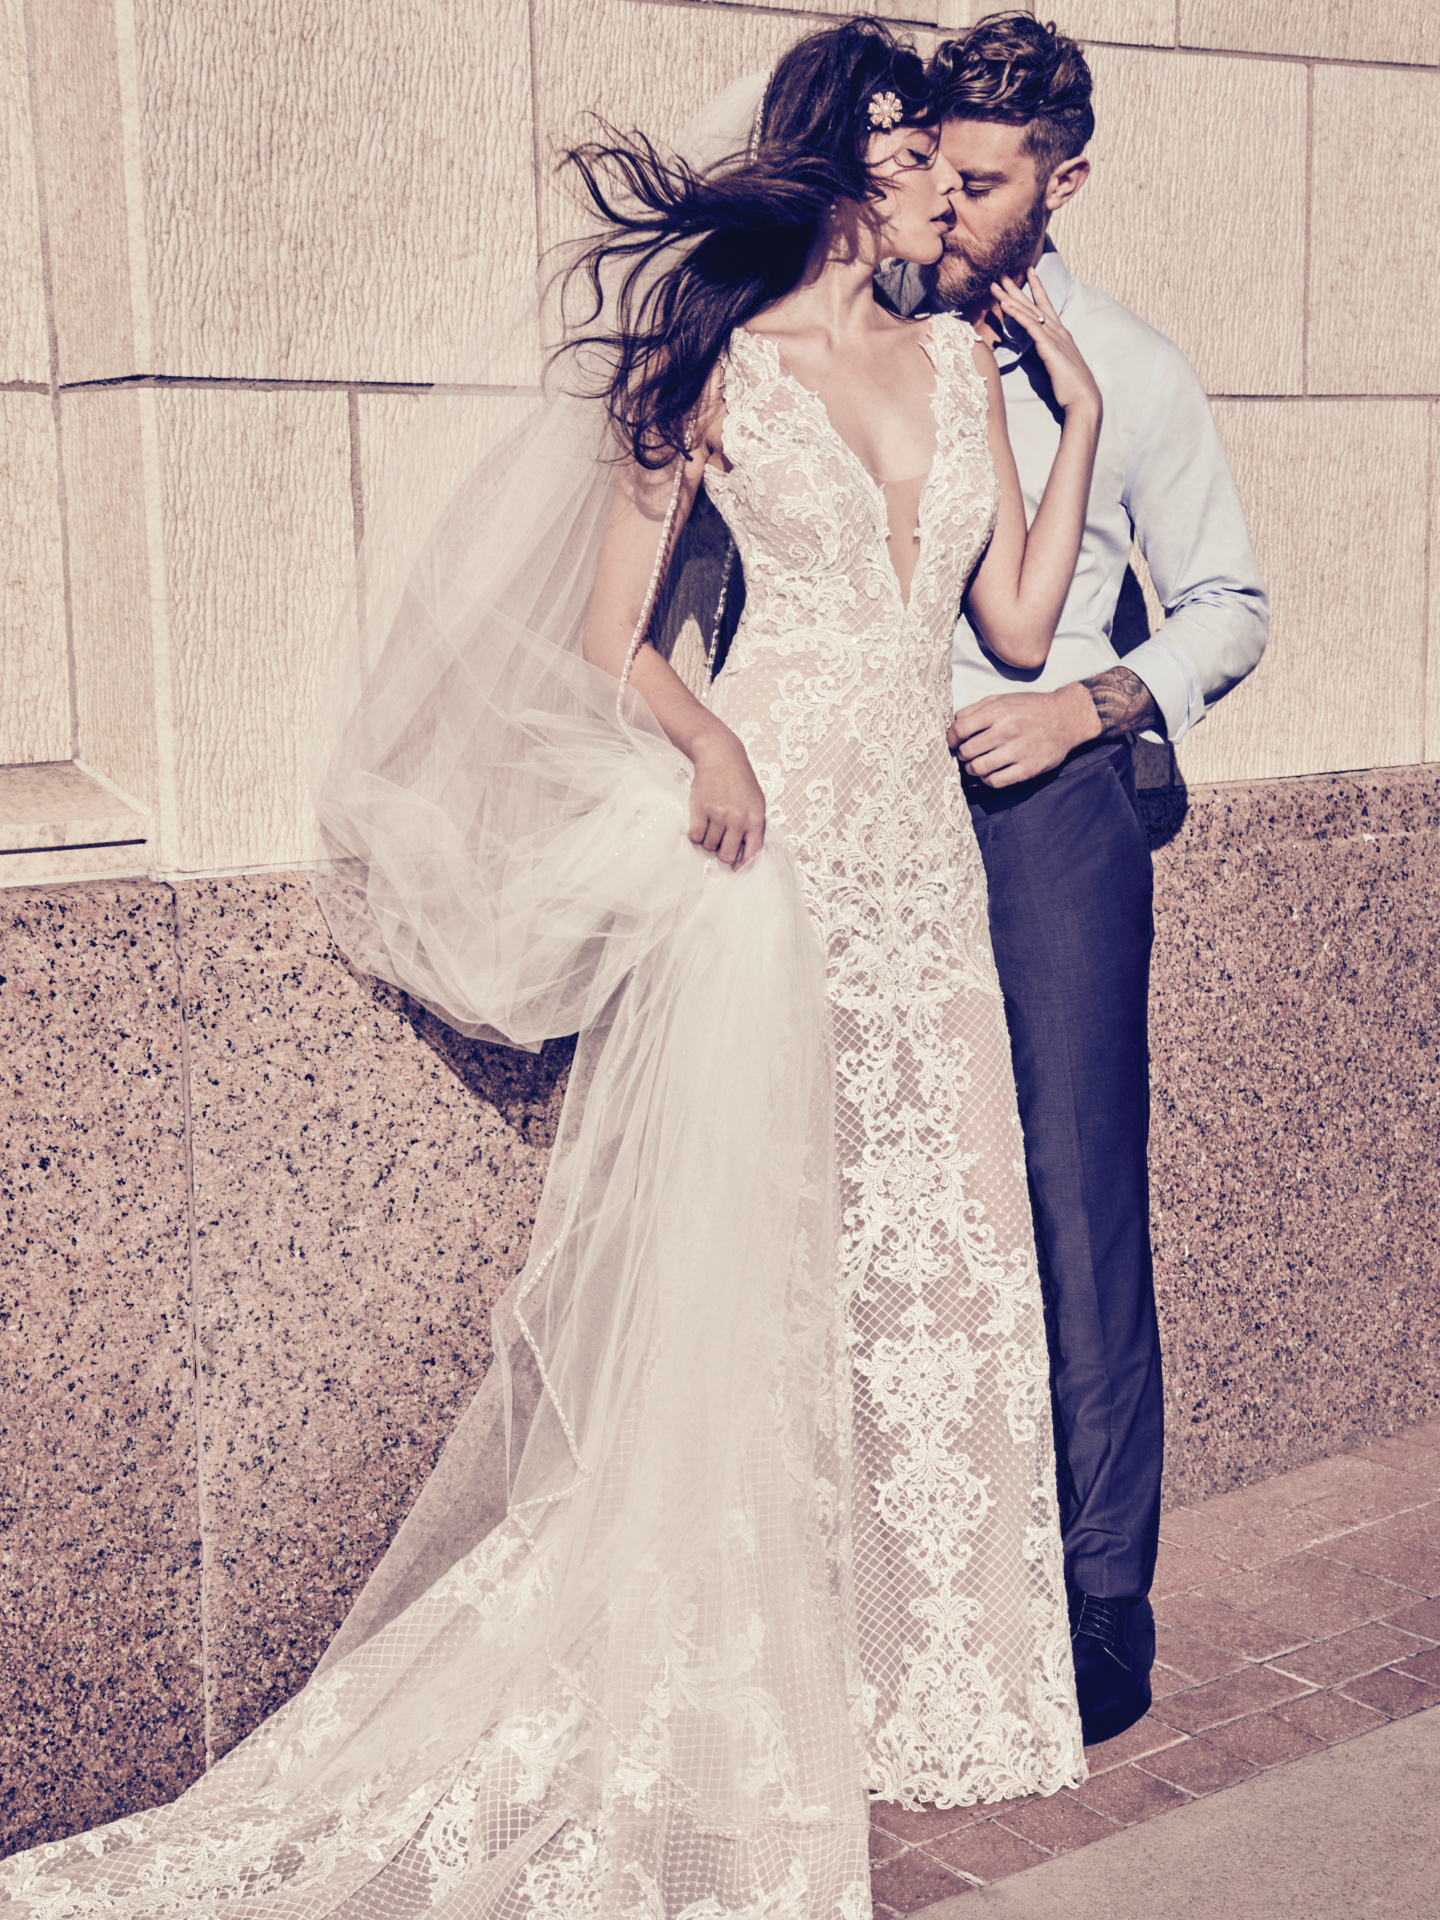 Best Accessories for Your Boho Wedding Dress - Hailey Marie boho wedding dress by Maggie Sottero legs for days